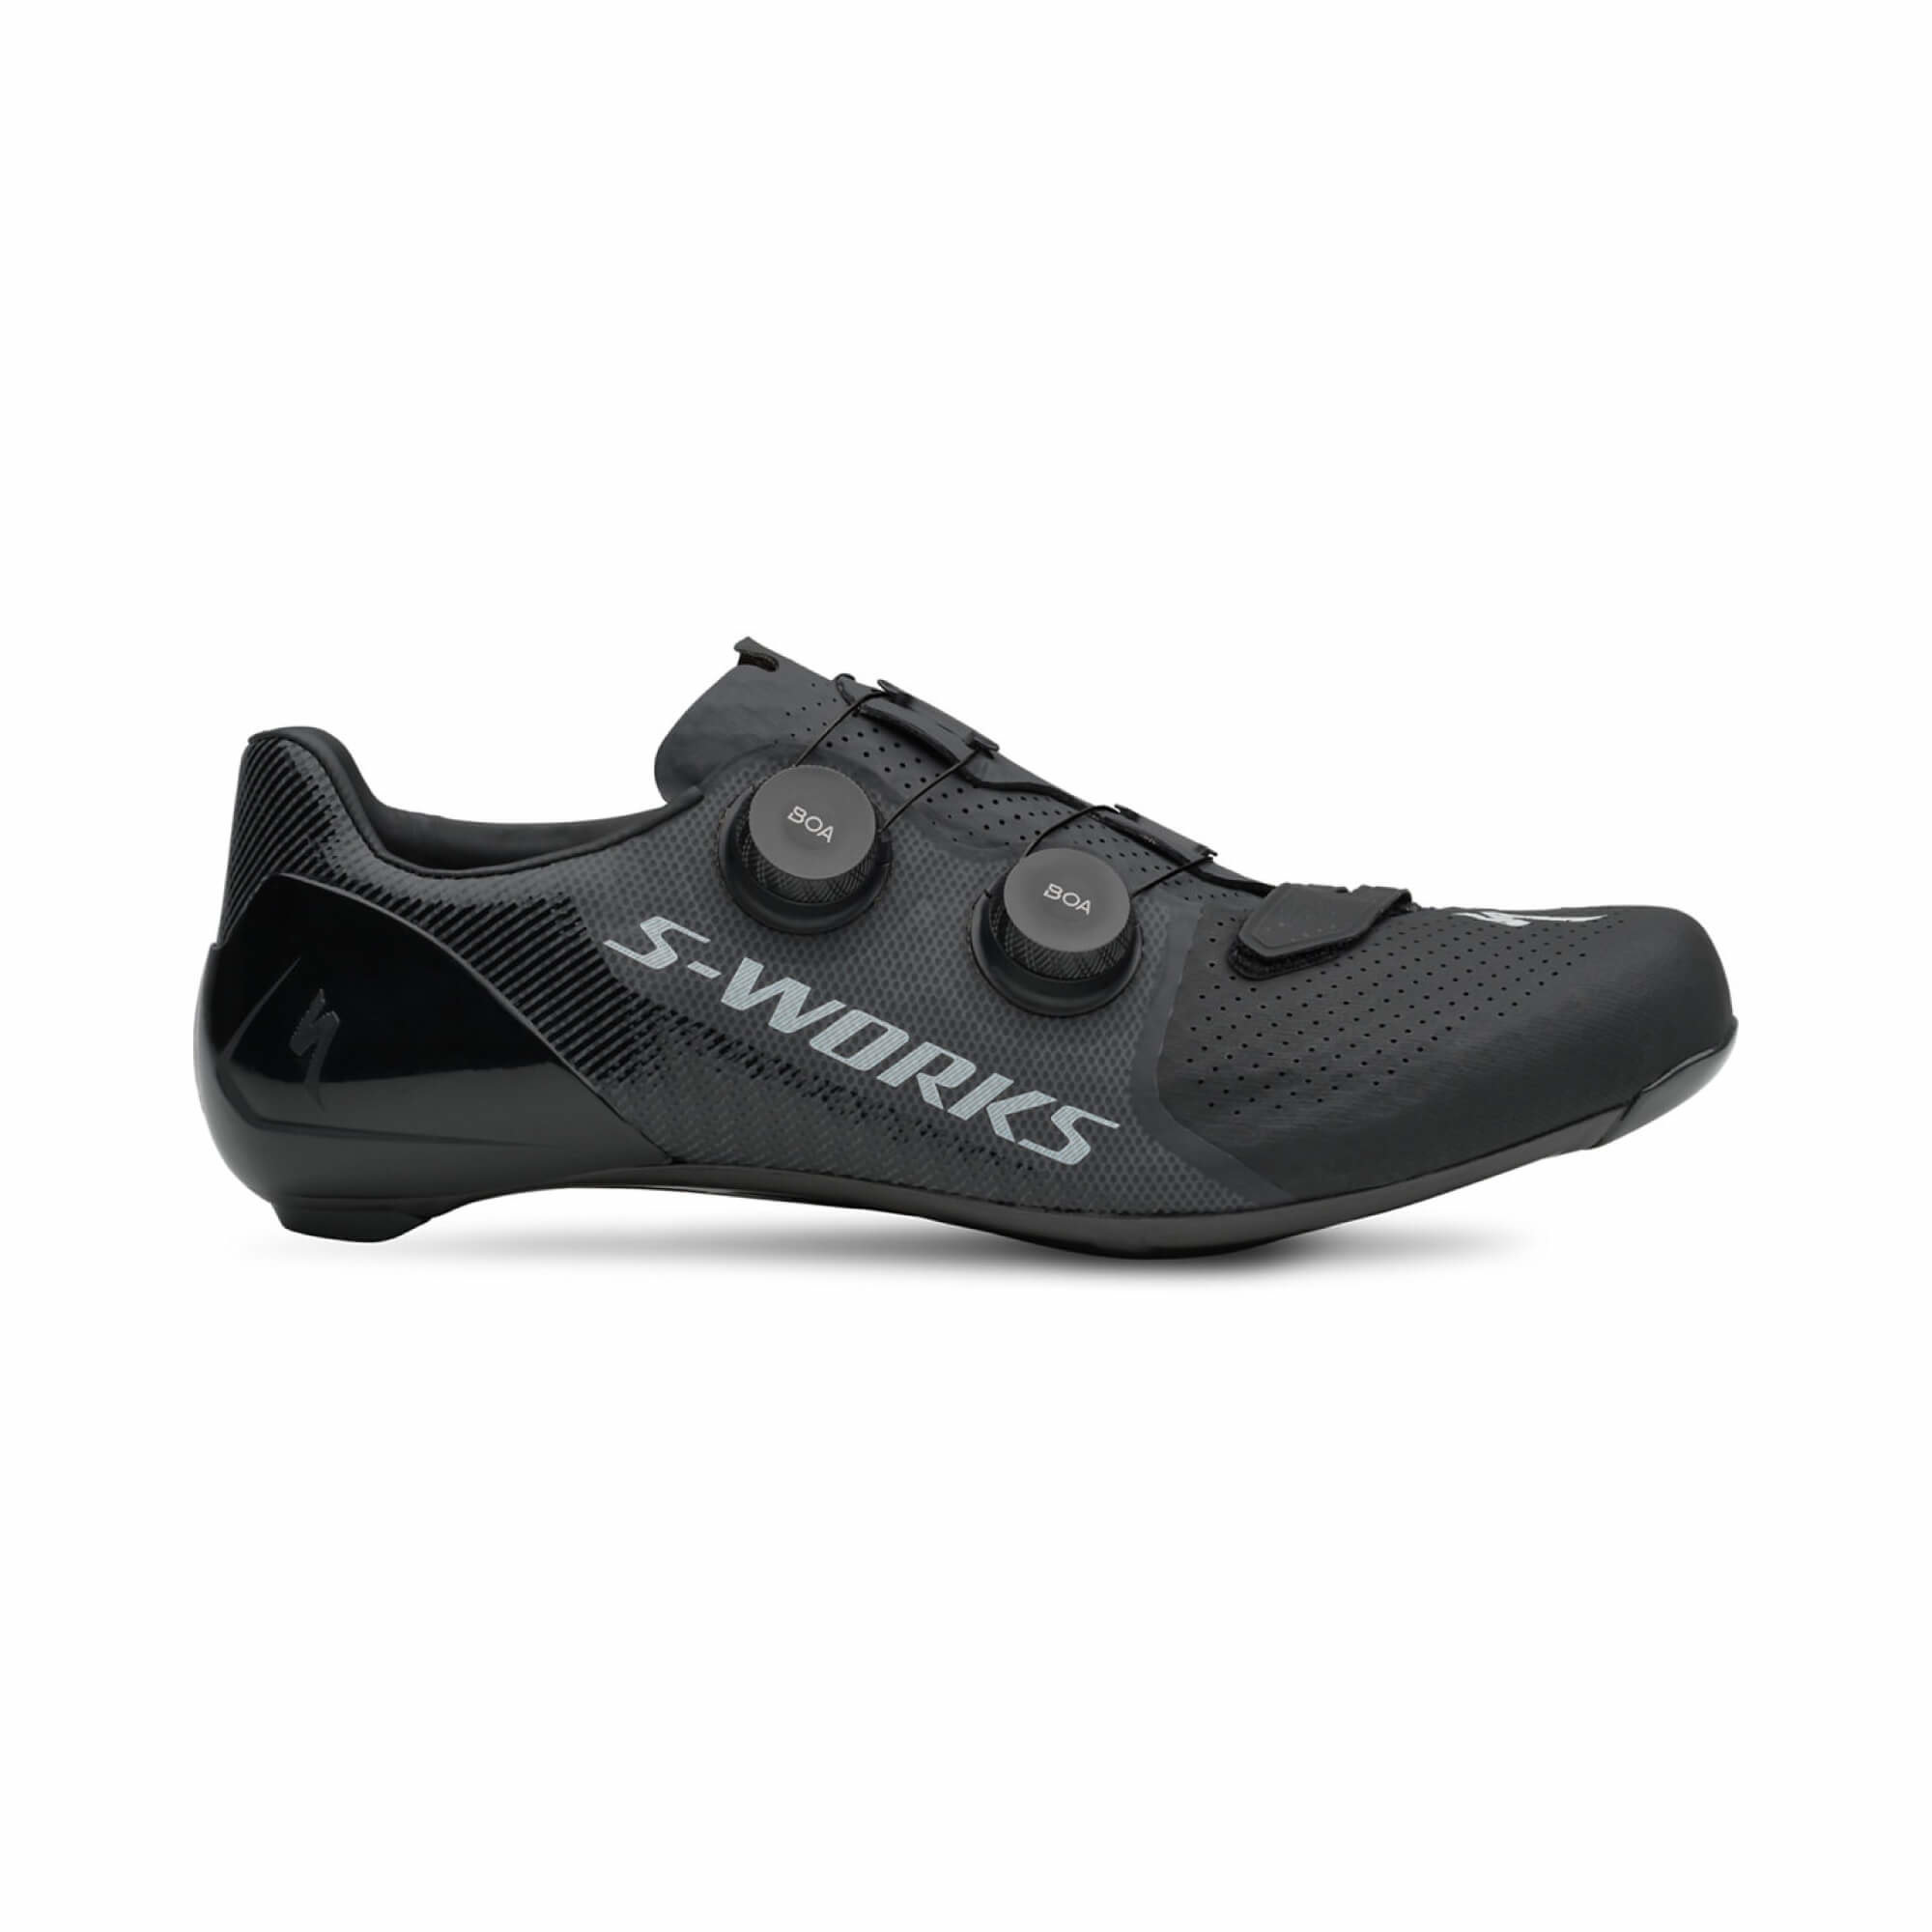 S-Works 7 Road Shoe-9